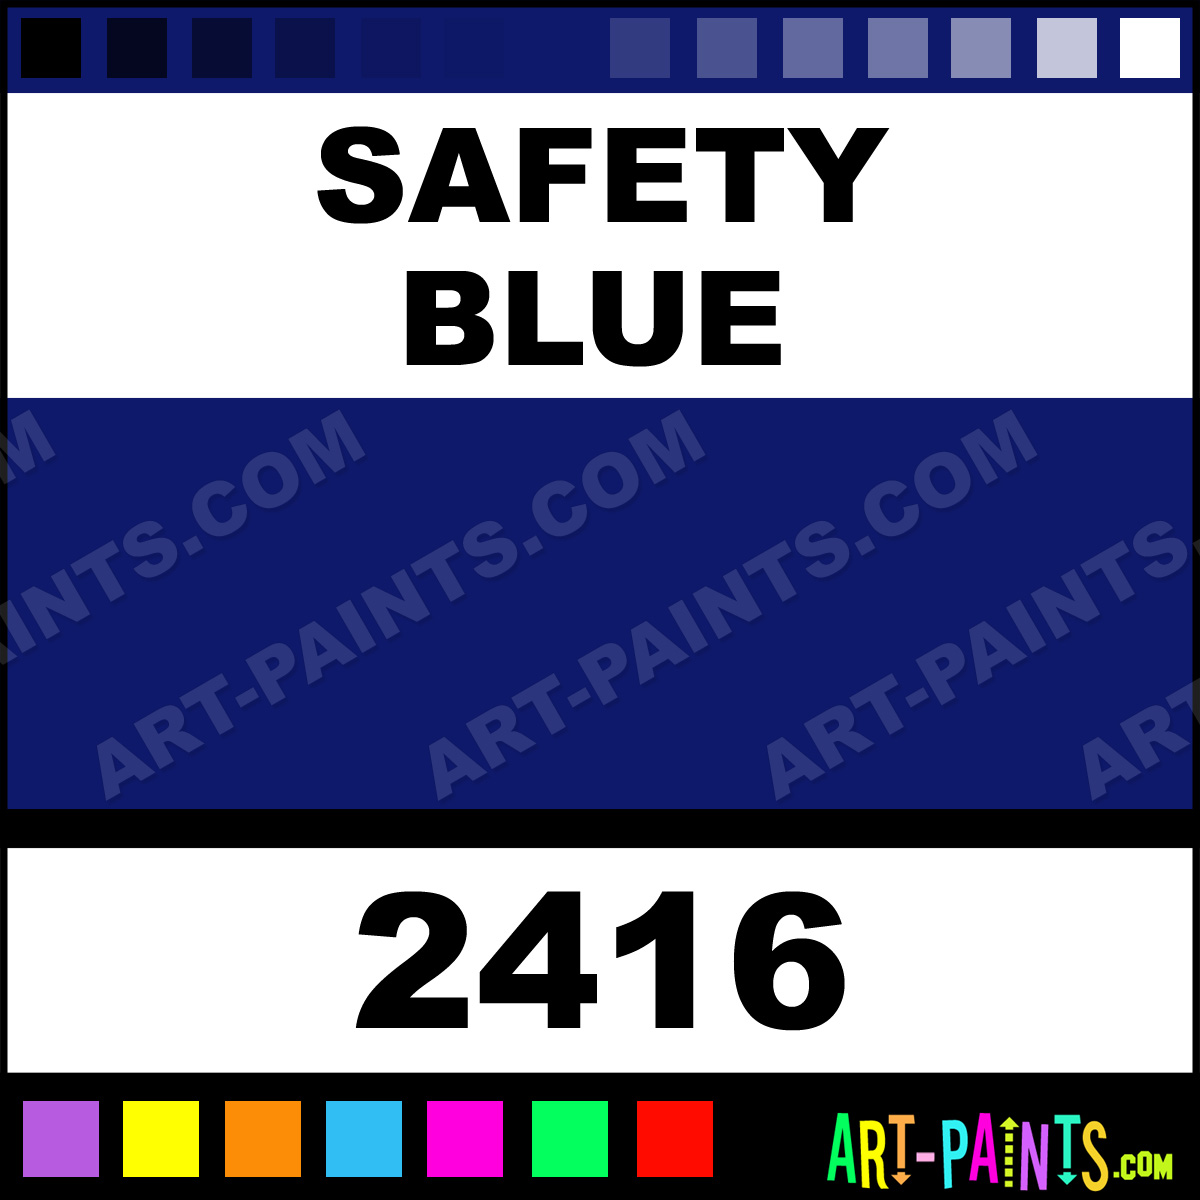 Safety blue osha spray paints 2416 safety blue paint for Spray paint safety